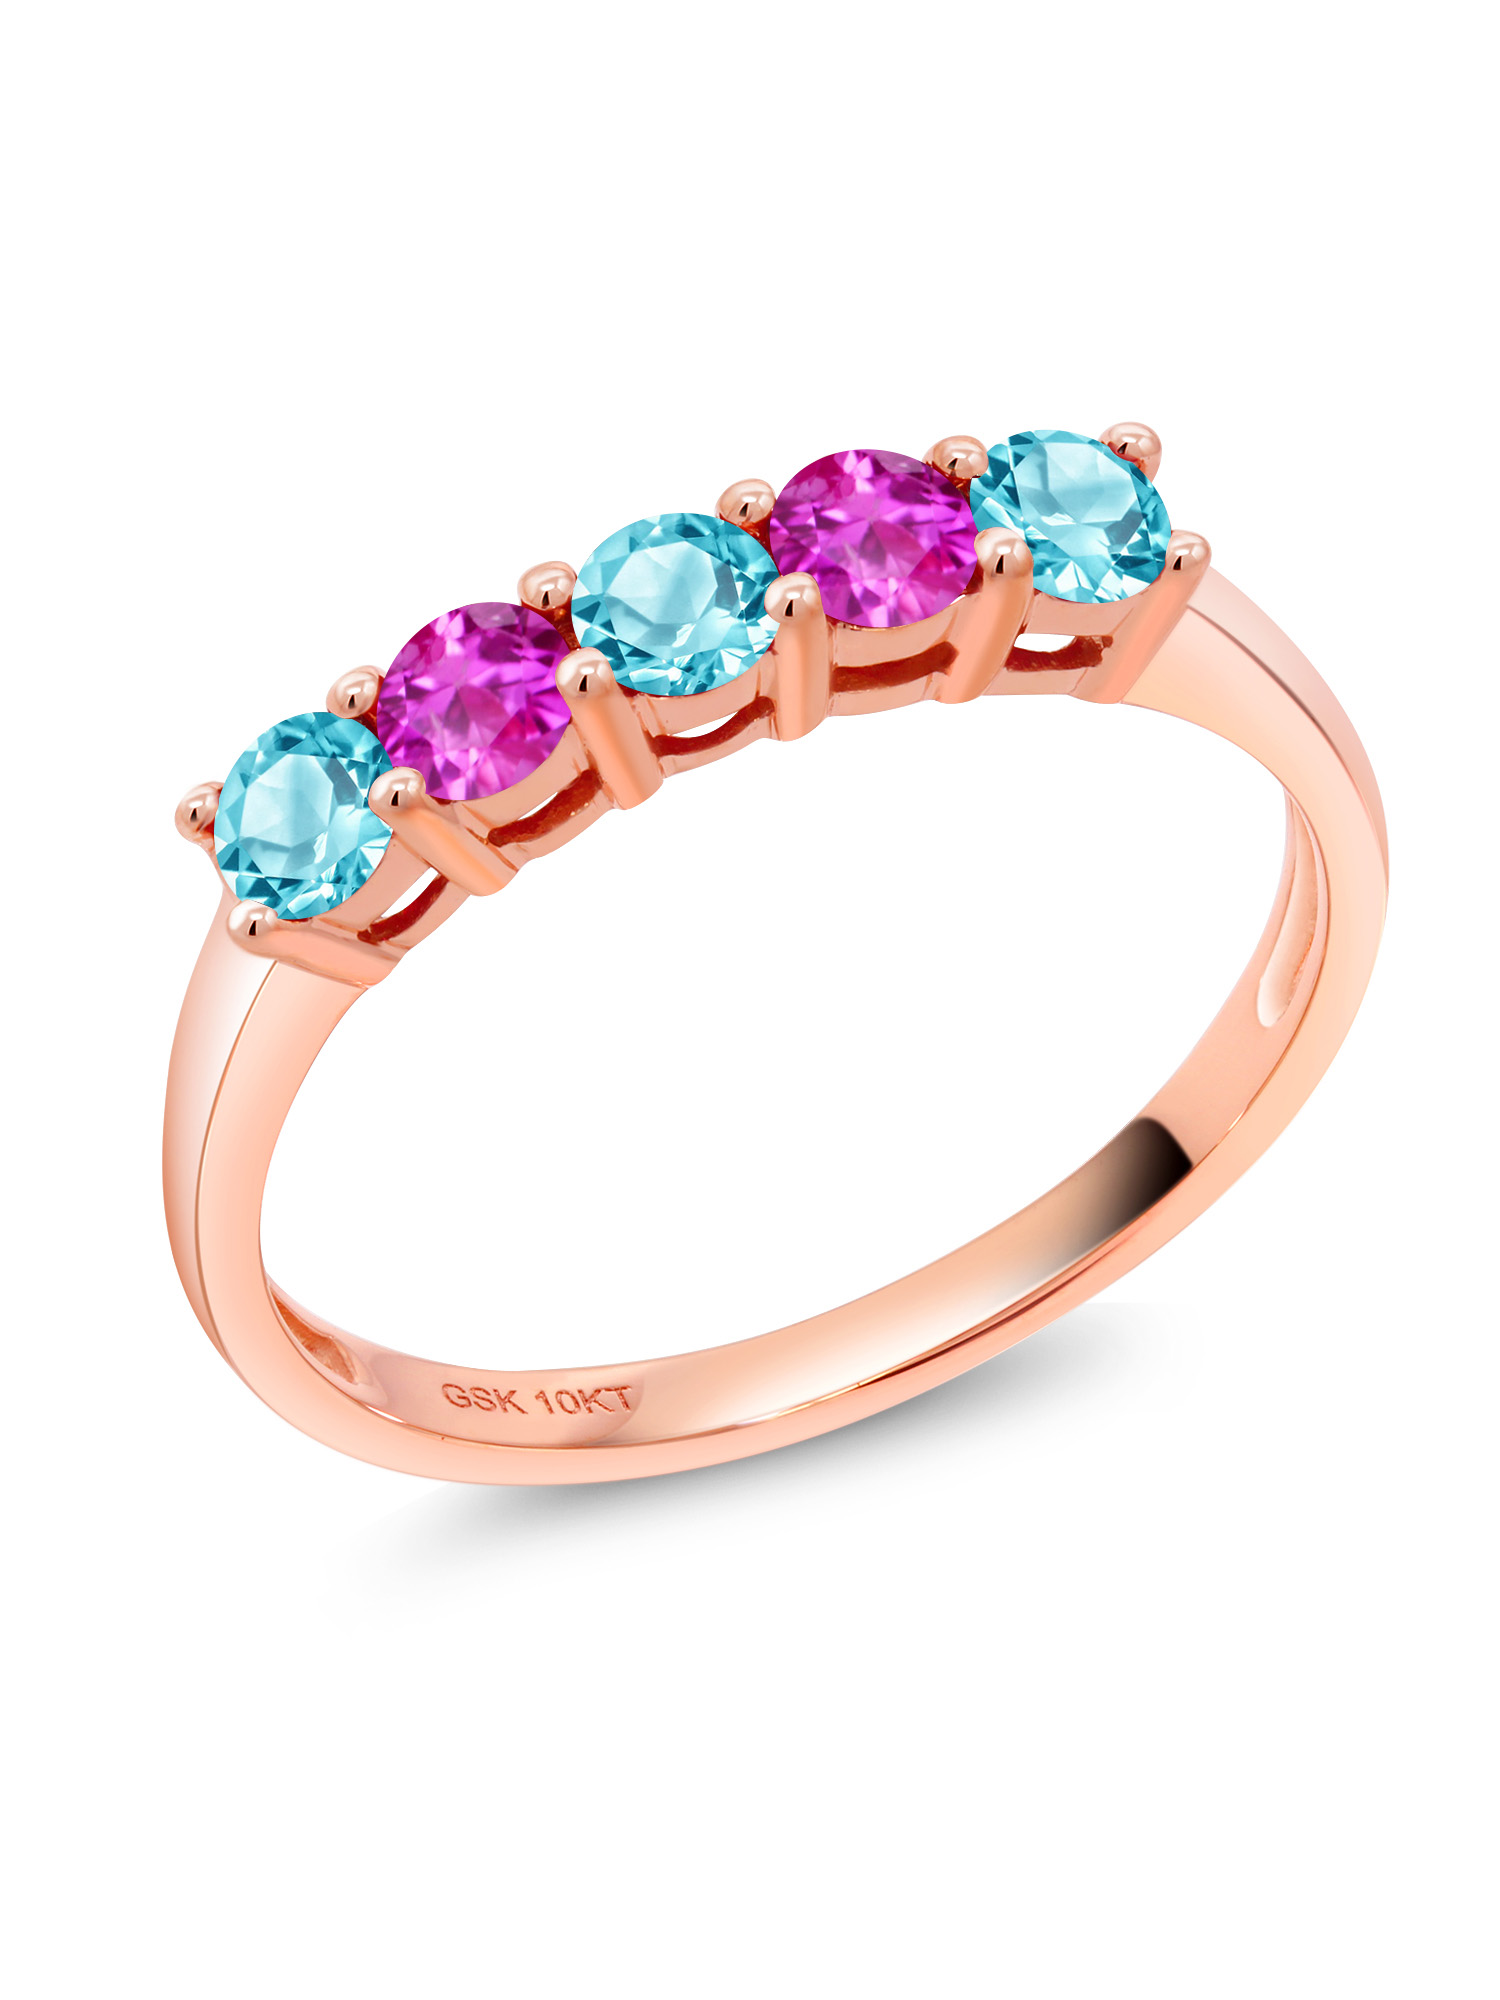 0.71 Ct Round Swiss Blue Topaz Pink Sapphire 10K Rose Gold Ring by